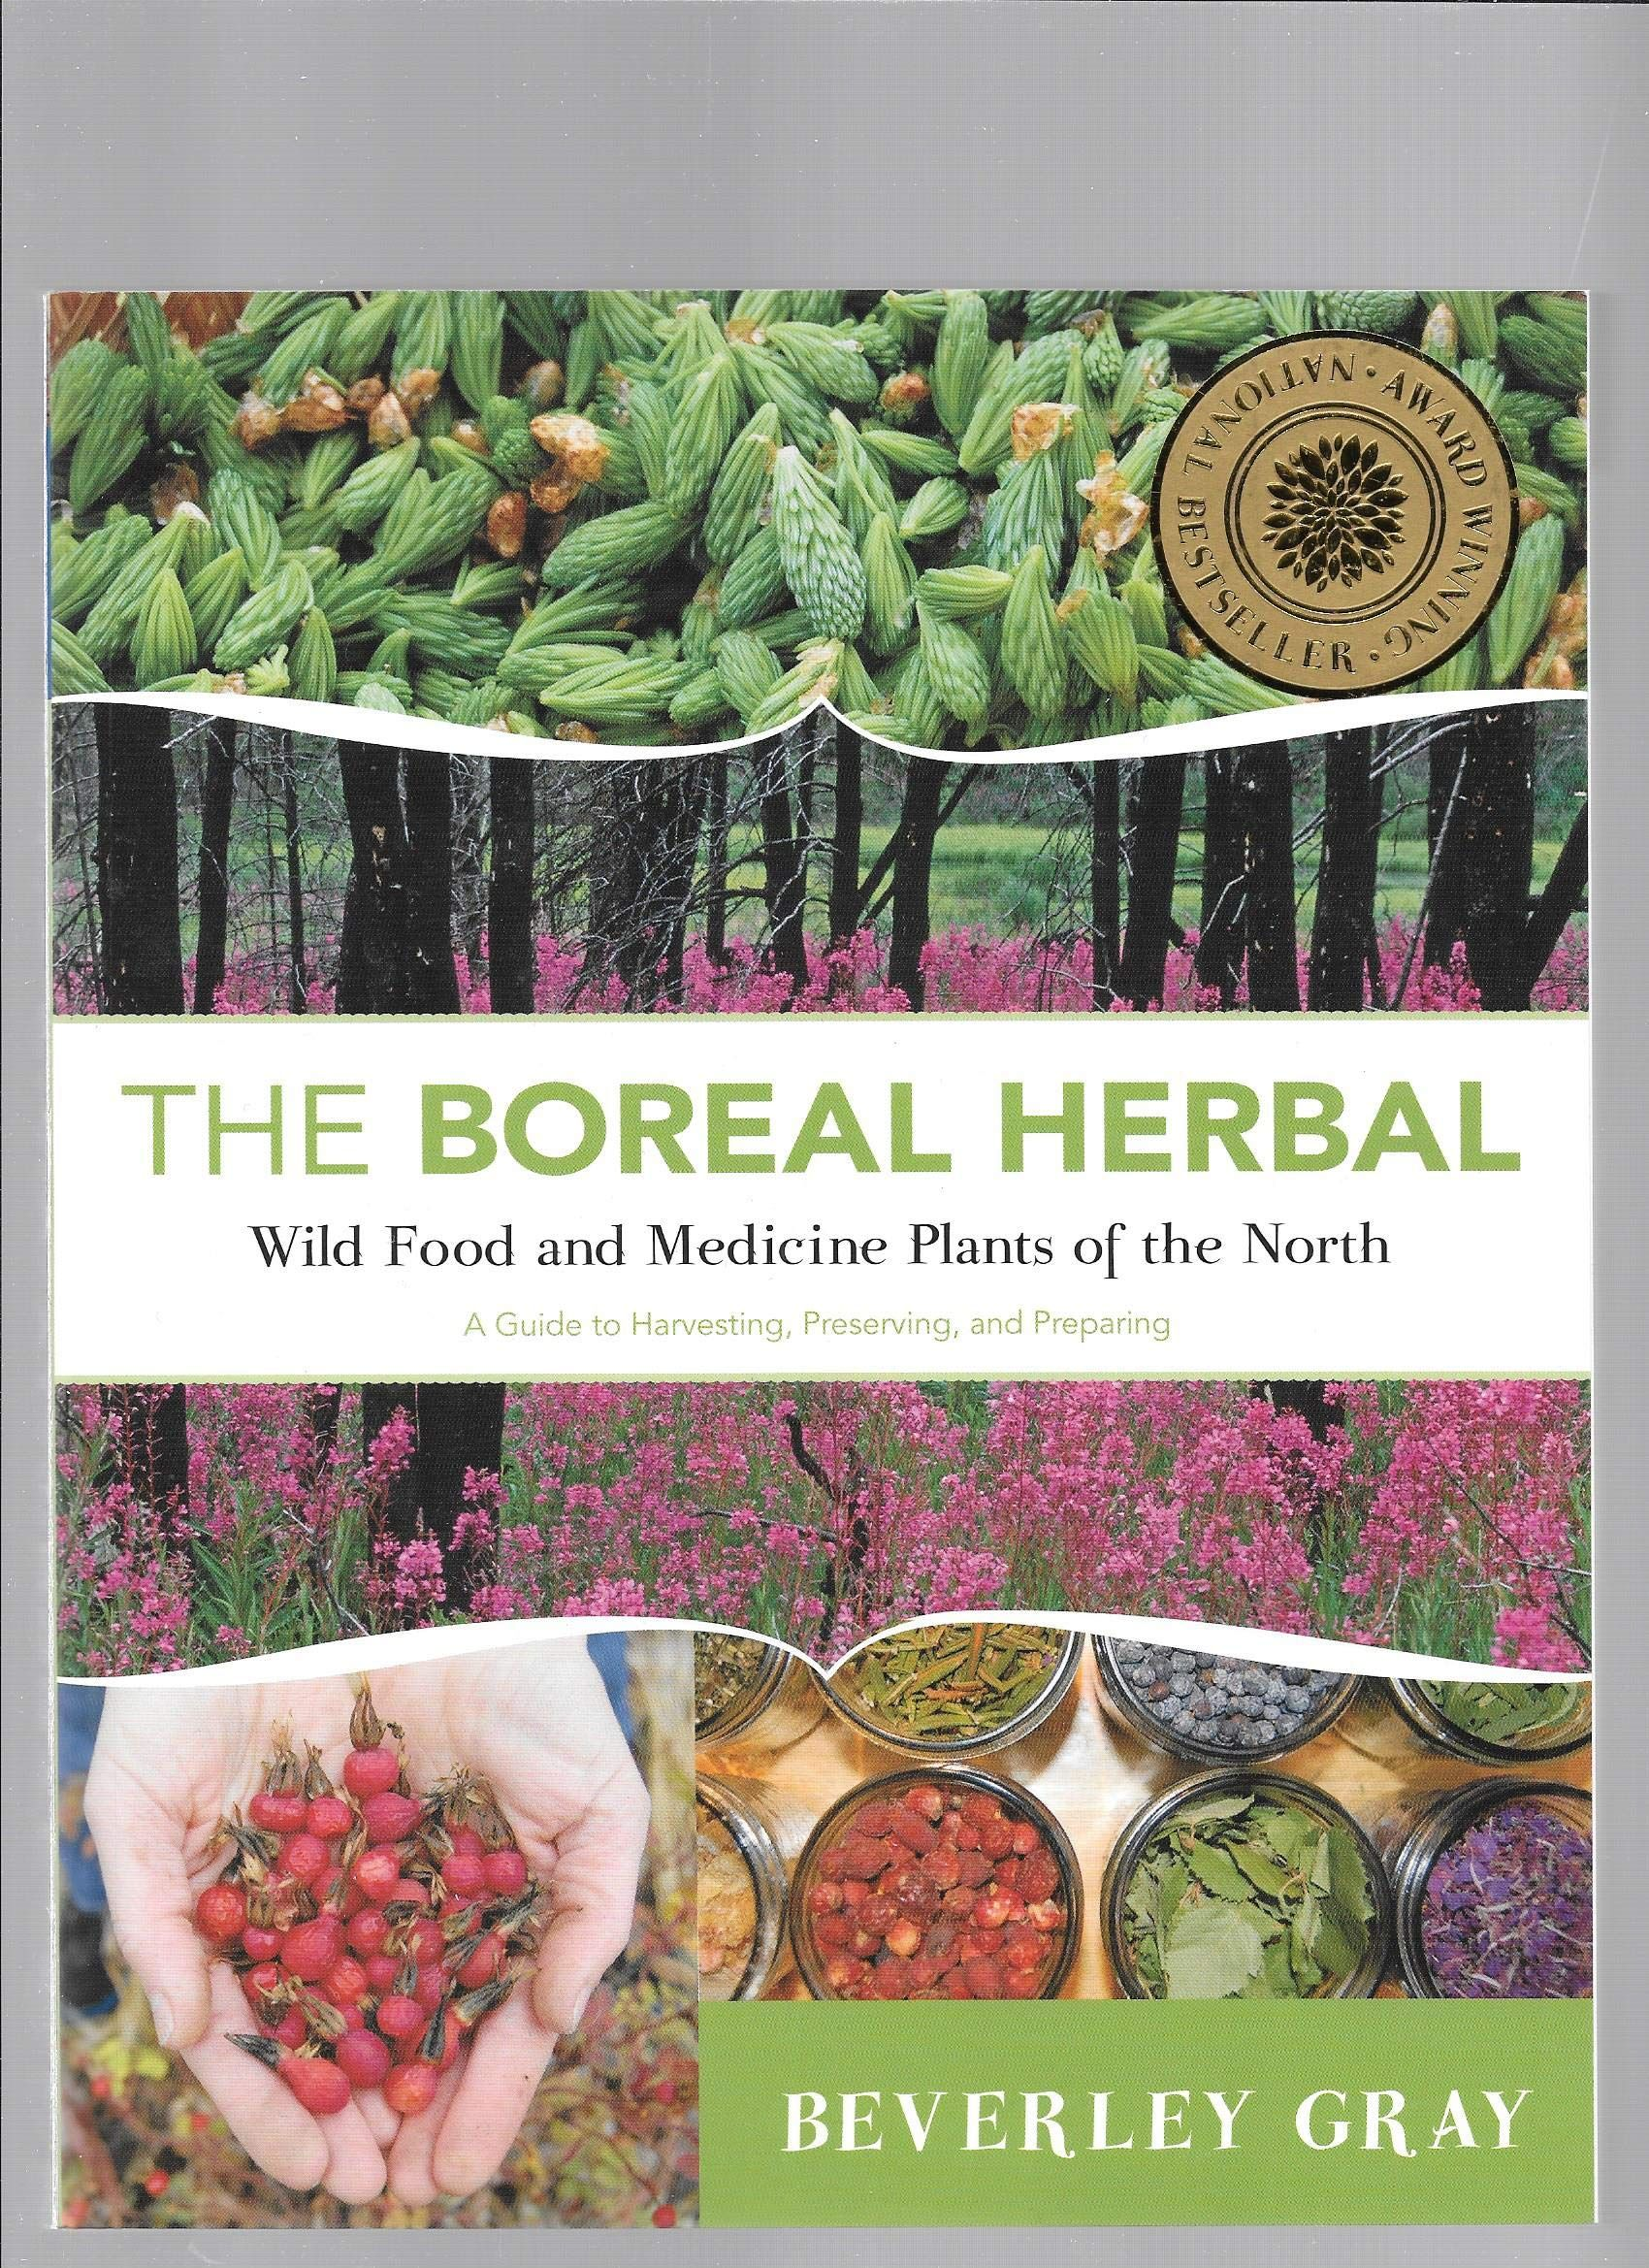 07123a8b4d191 Boreal Herbal, The: Wild Food and Medicine Plants of the North: Beverley  Gray: 9780986827105: Gateway - Amazon.ca